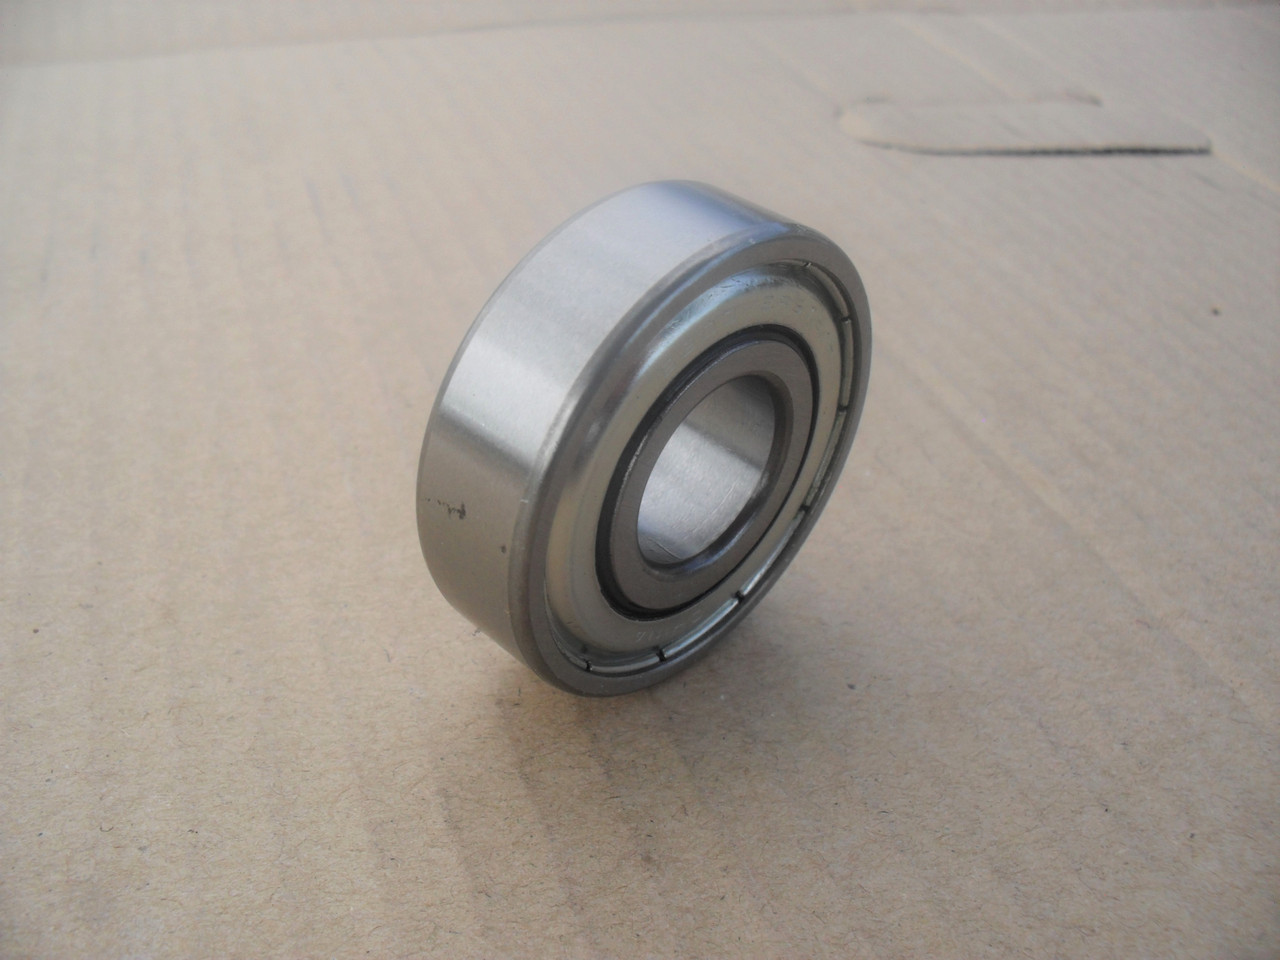 Deck Spindle Bearing for Cub Cadet 741-0524, 741-1122, 941-0524, 941-0524A